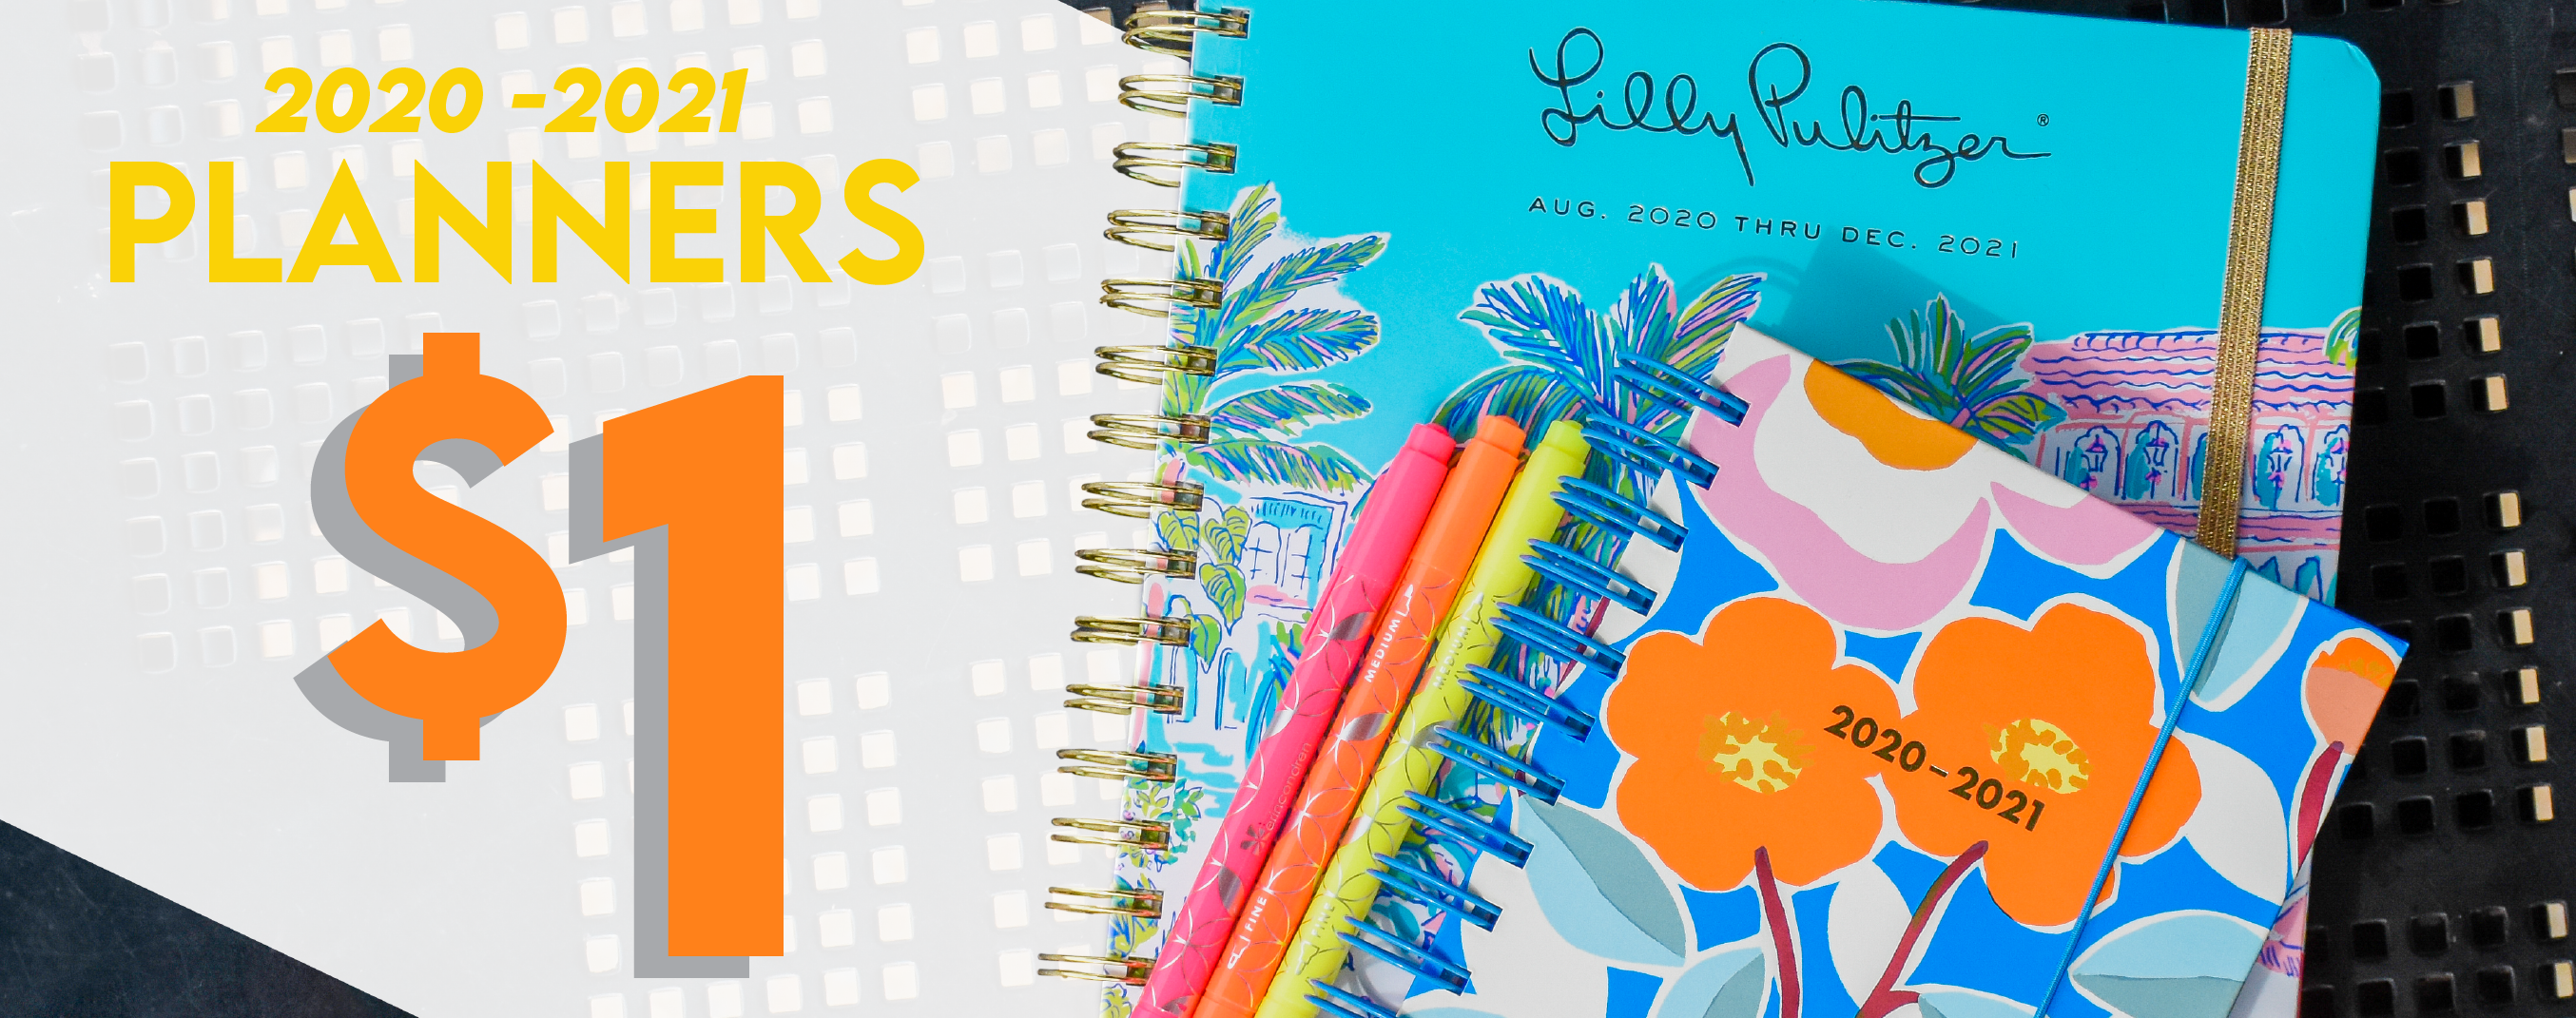 Shop 2020-2021 planners now for $1.00.